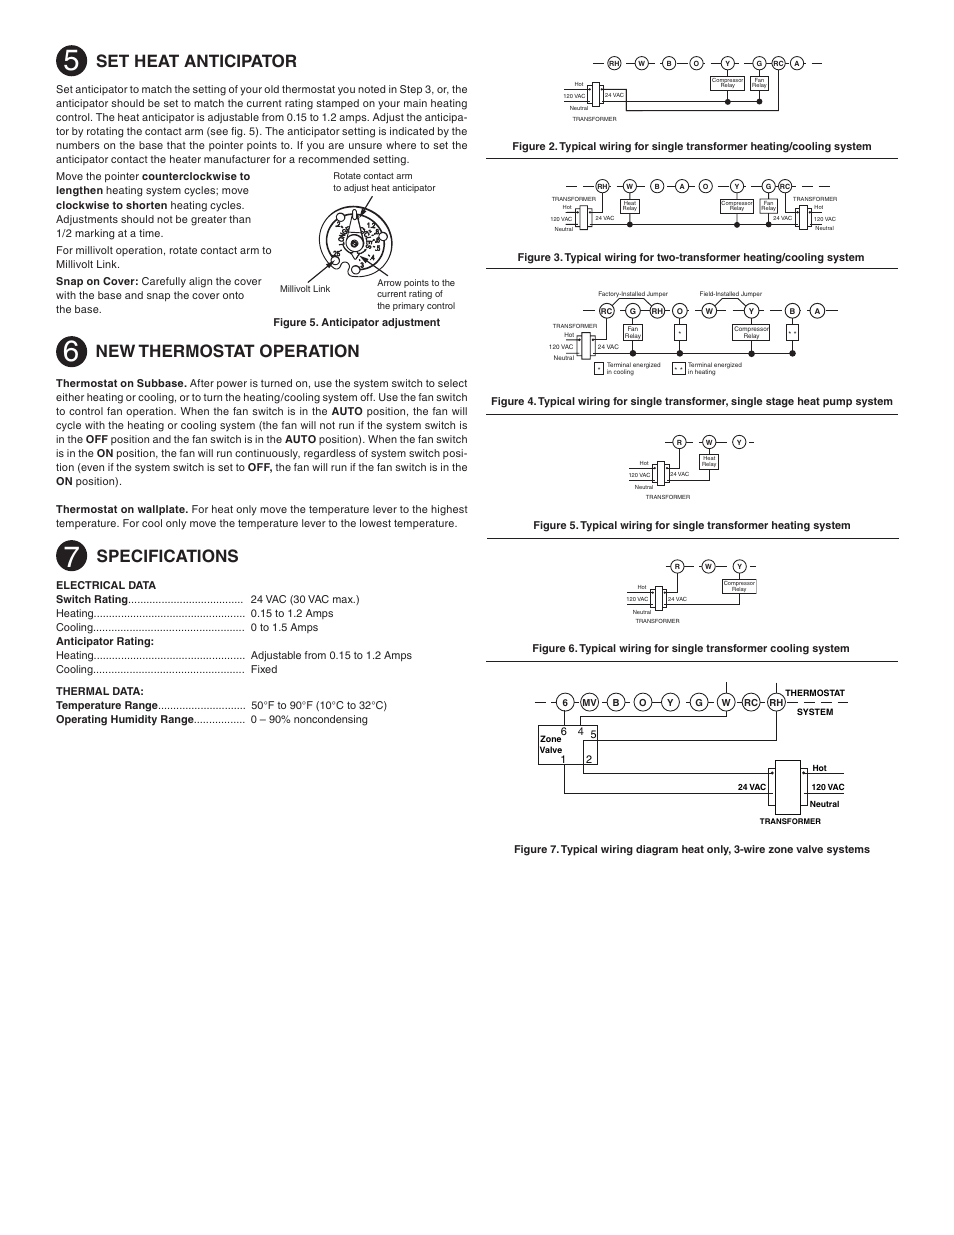 Set Heat Anticipator New Thermostat Operation Specifications Typical Wiring Diagram Data White Rodgers 1e56n 444 User Manual Page 2 8